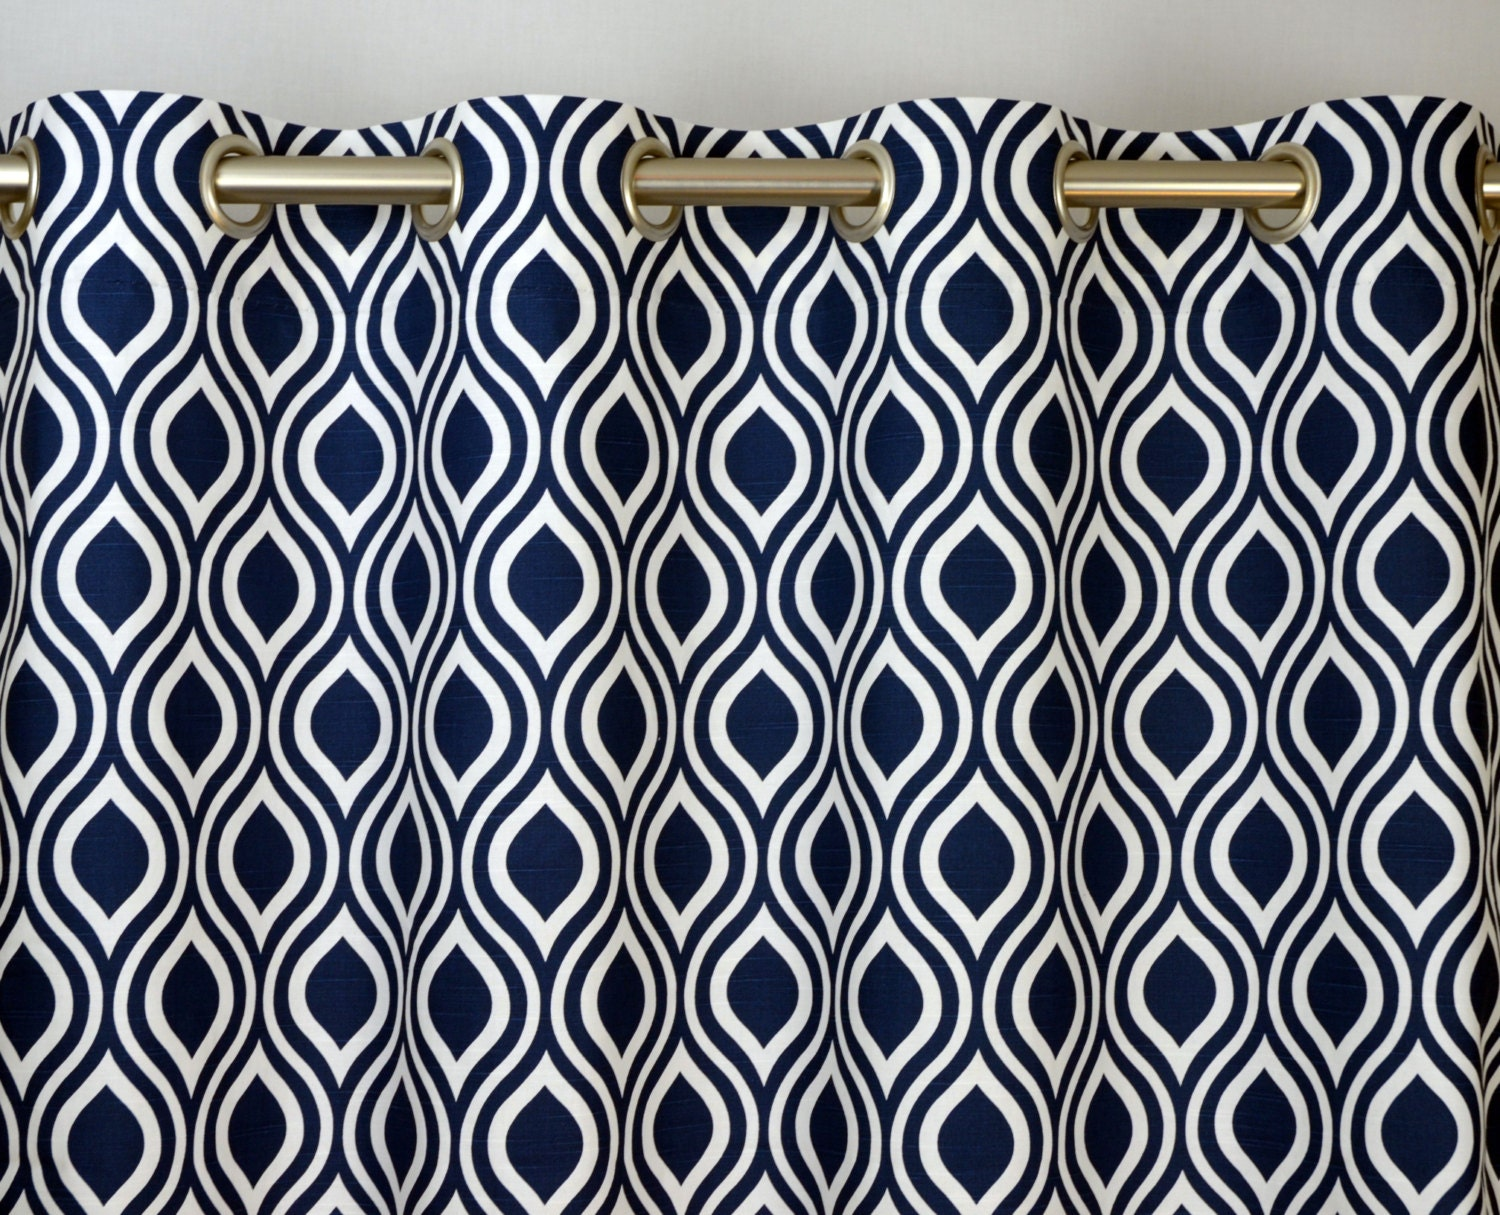 Pair Of Grommet Top Curtains In Navy Blue And White By